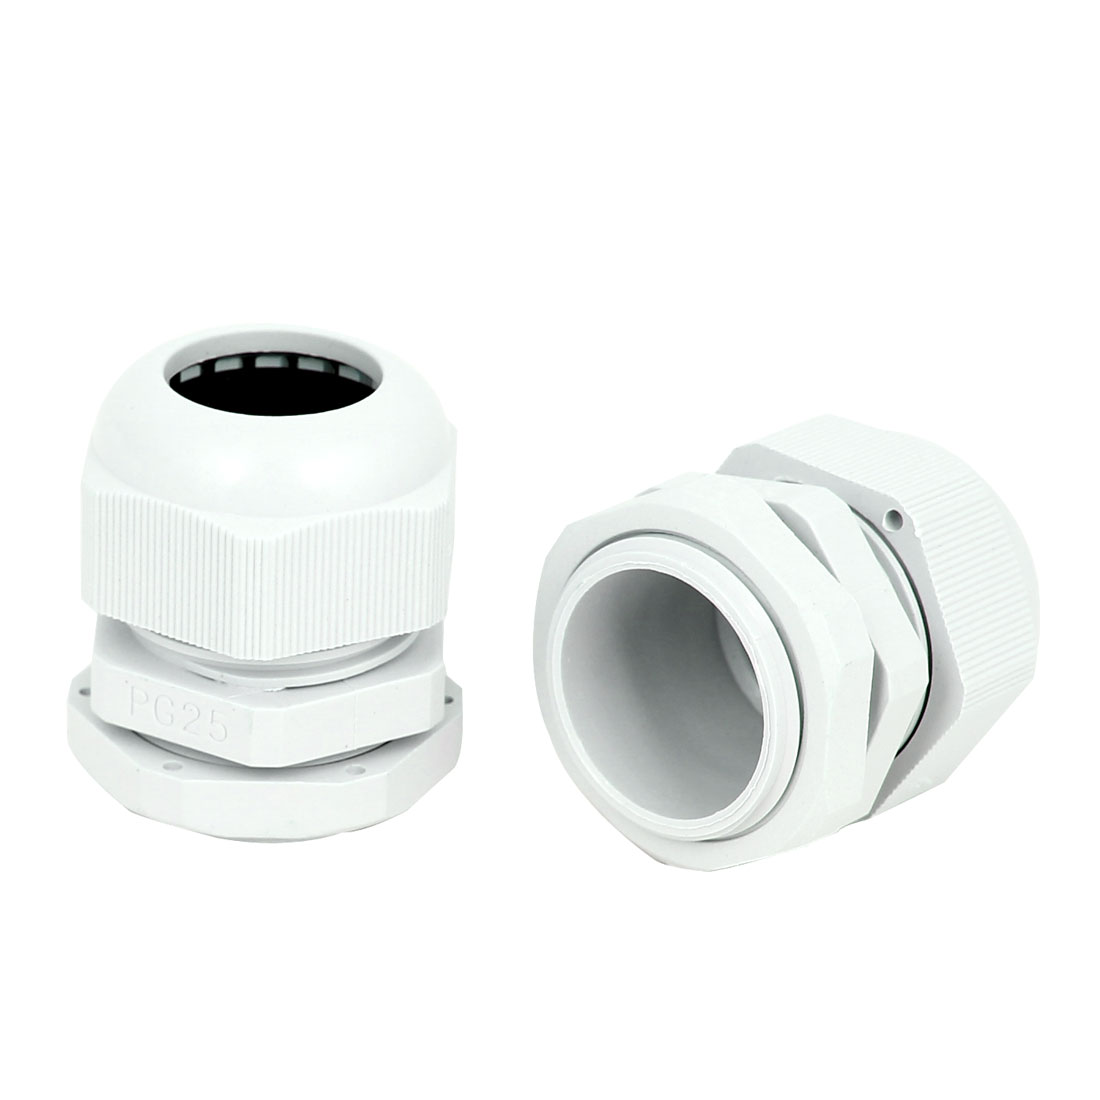 2 Pcs PG25 30mm Male Thread Dia Waterproof Cable Glands Fixing Connector Adapter Fastener White